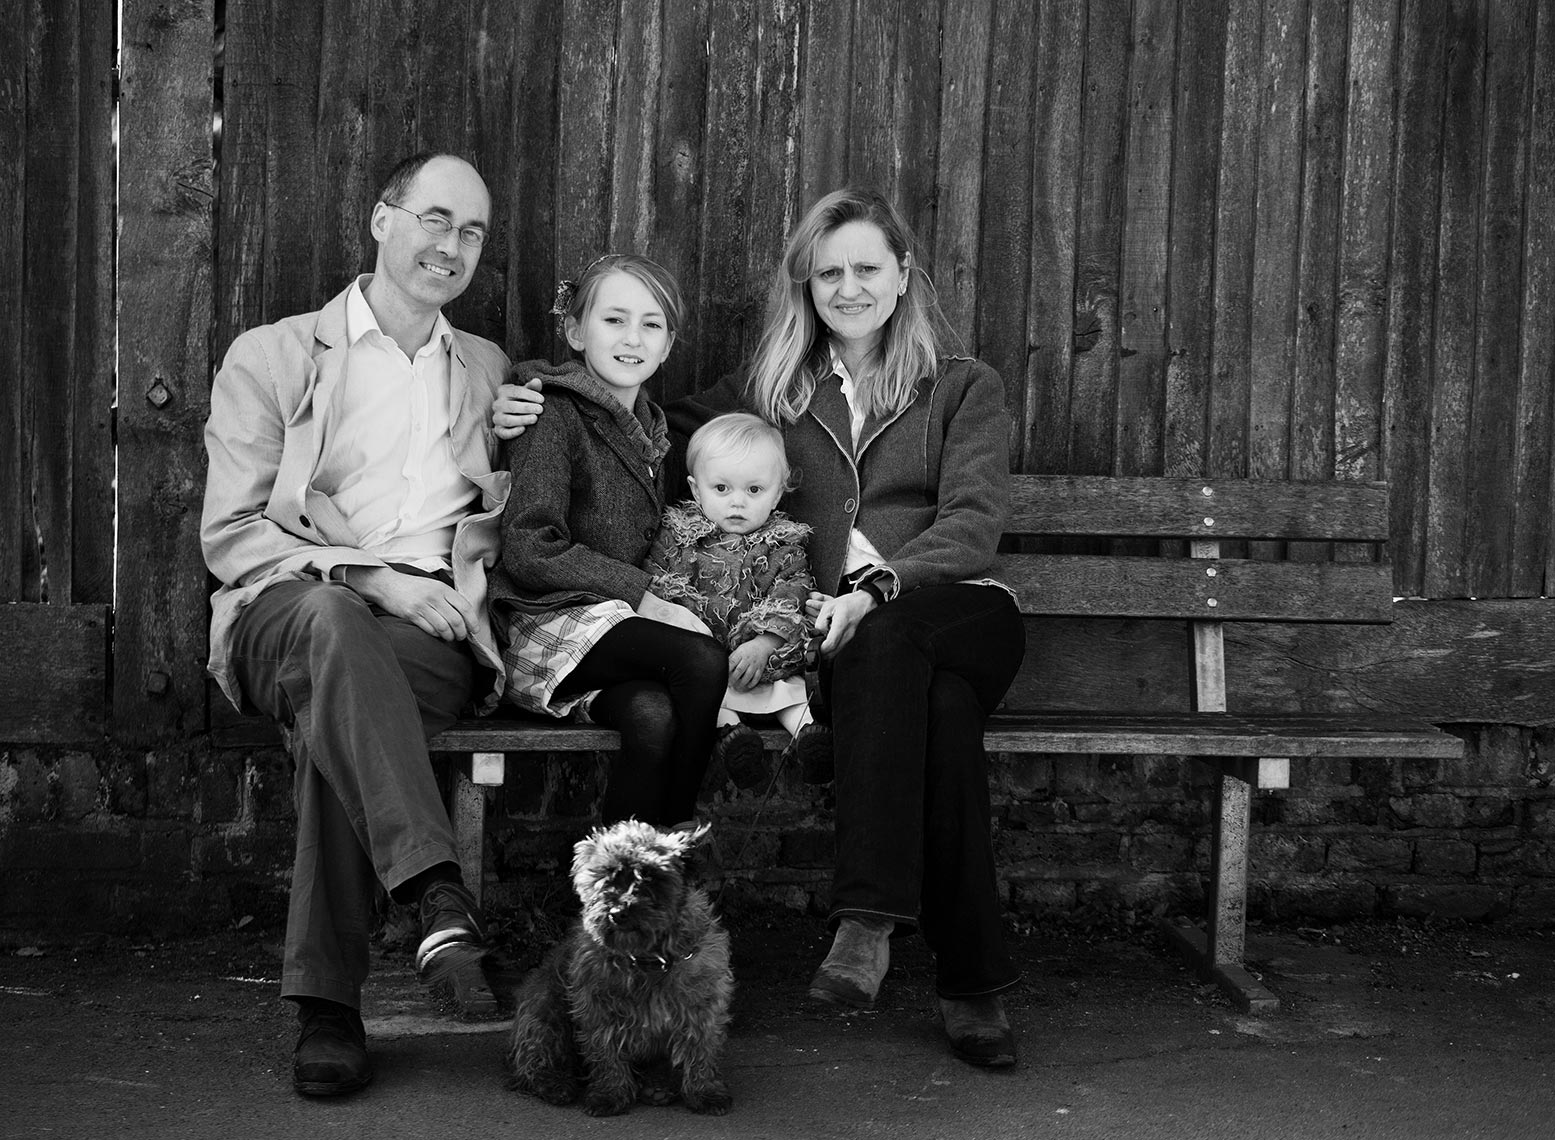 FAMILY ON BENCH.jpg